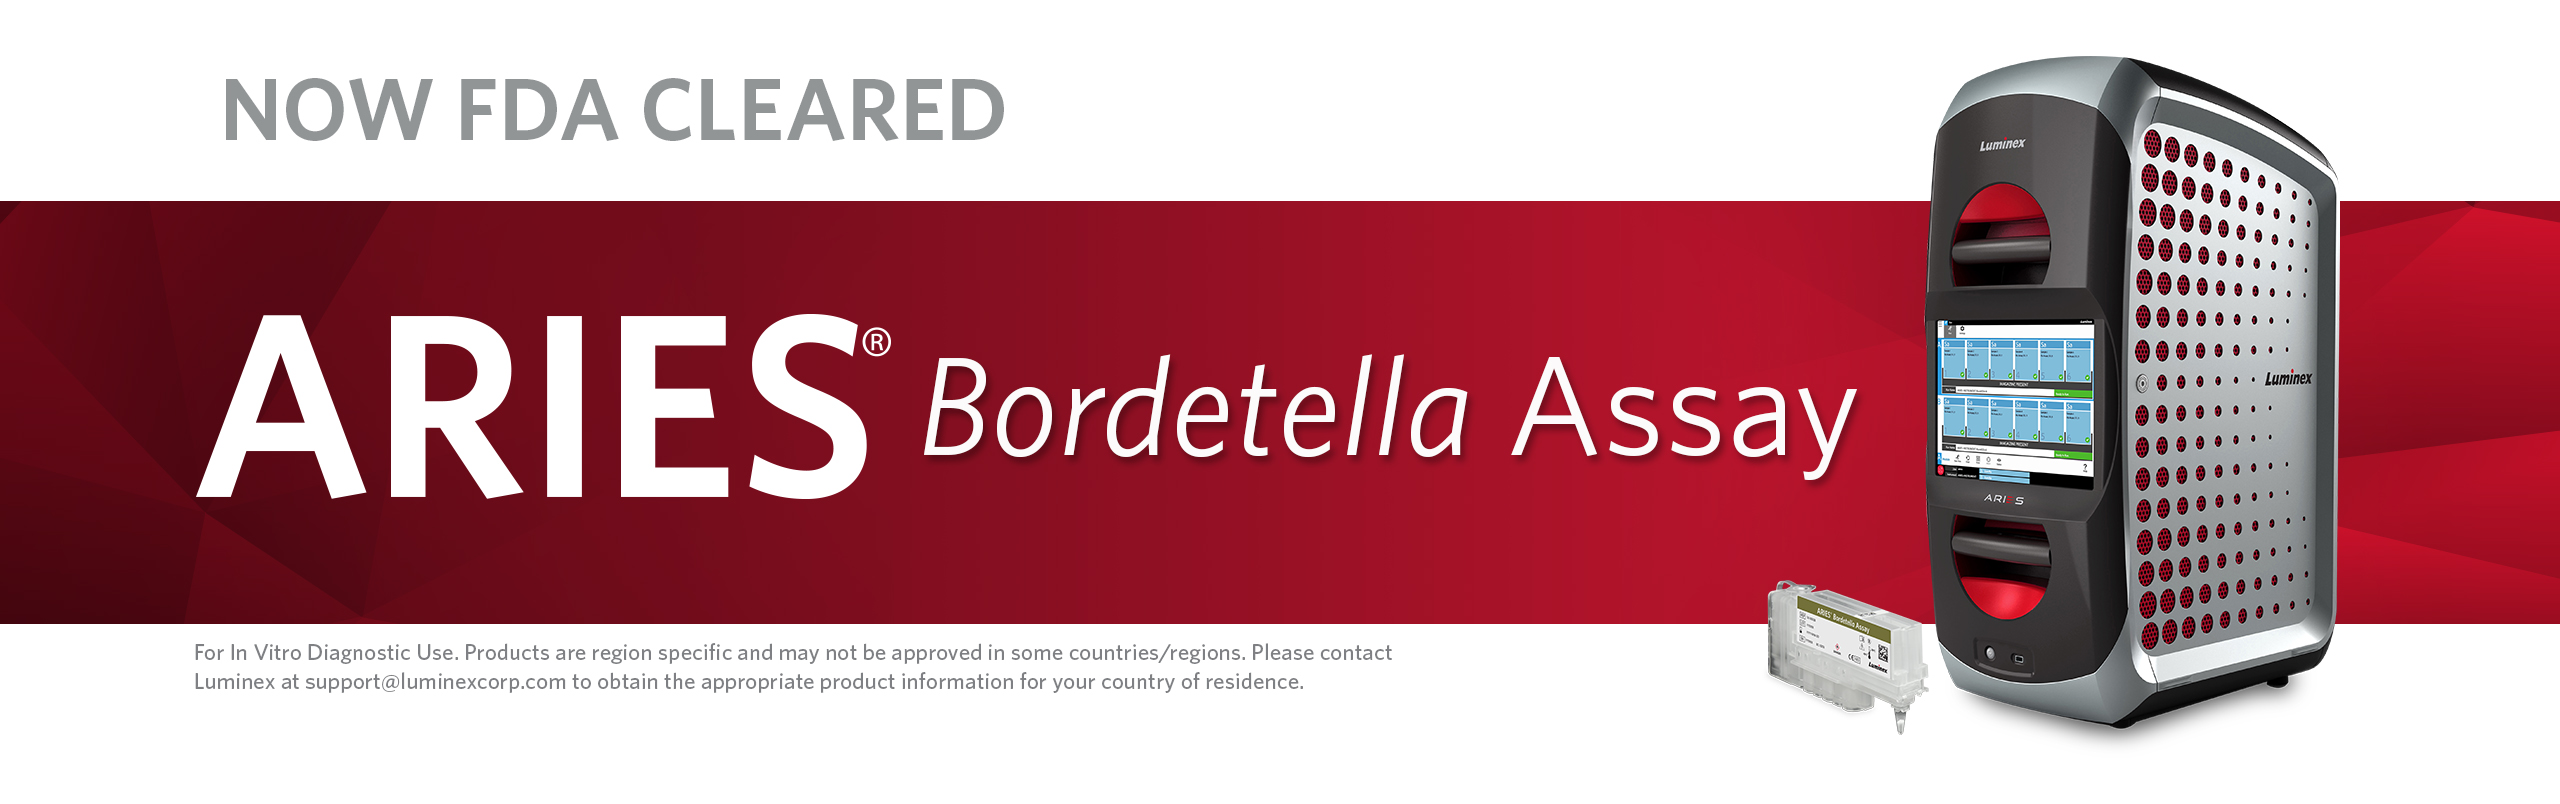 Now FDA Cleared: ARIES® Bordetella Assay